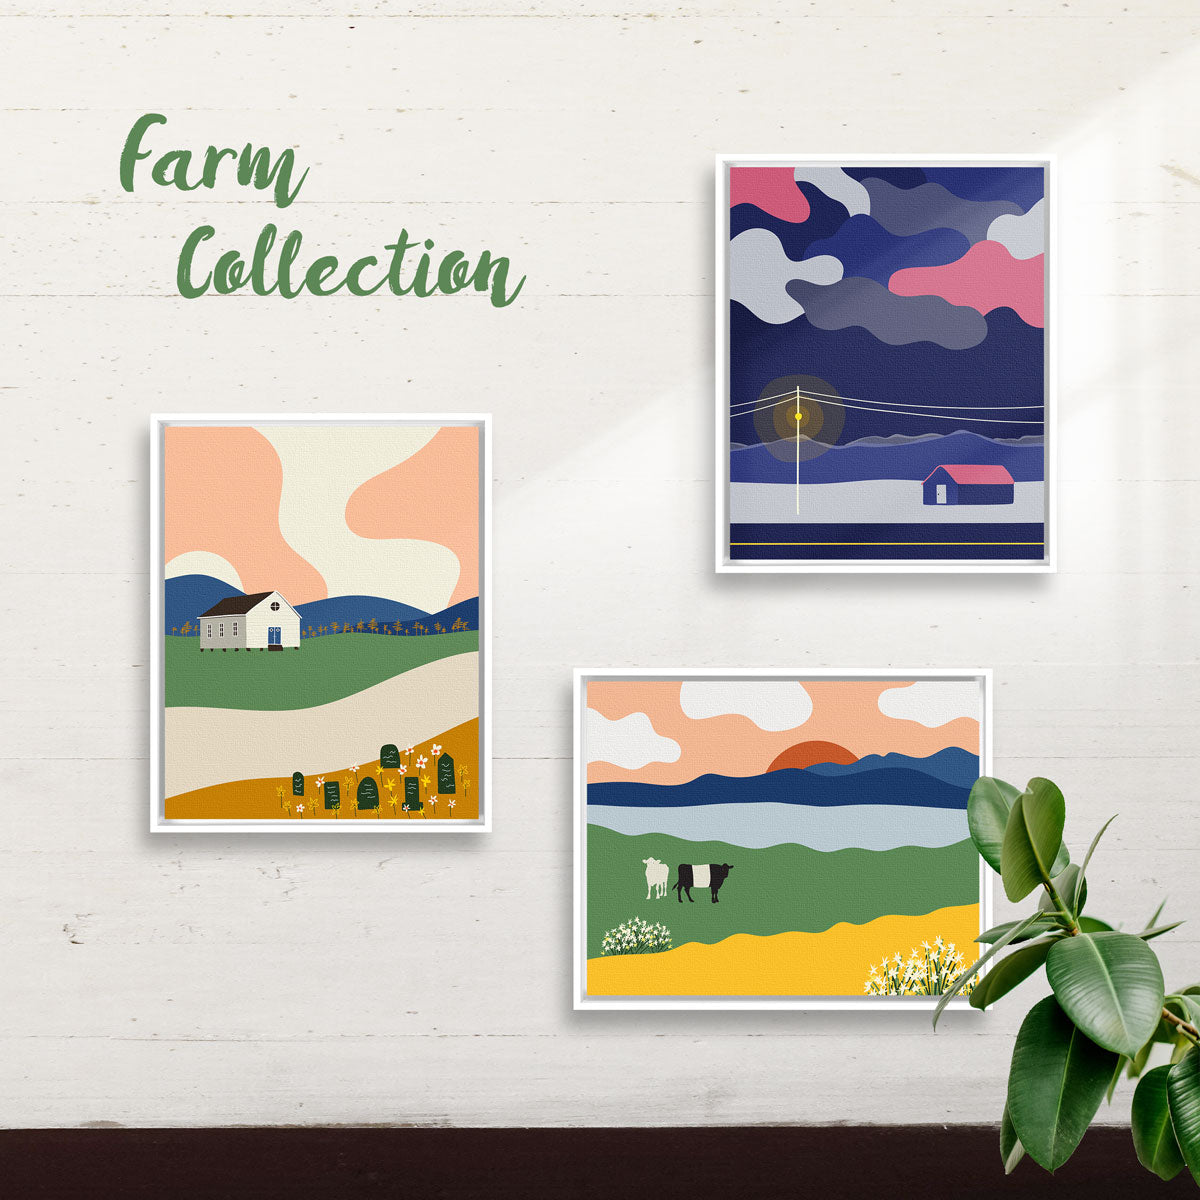 farm collection nole creative